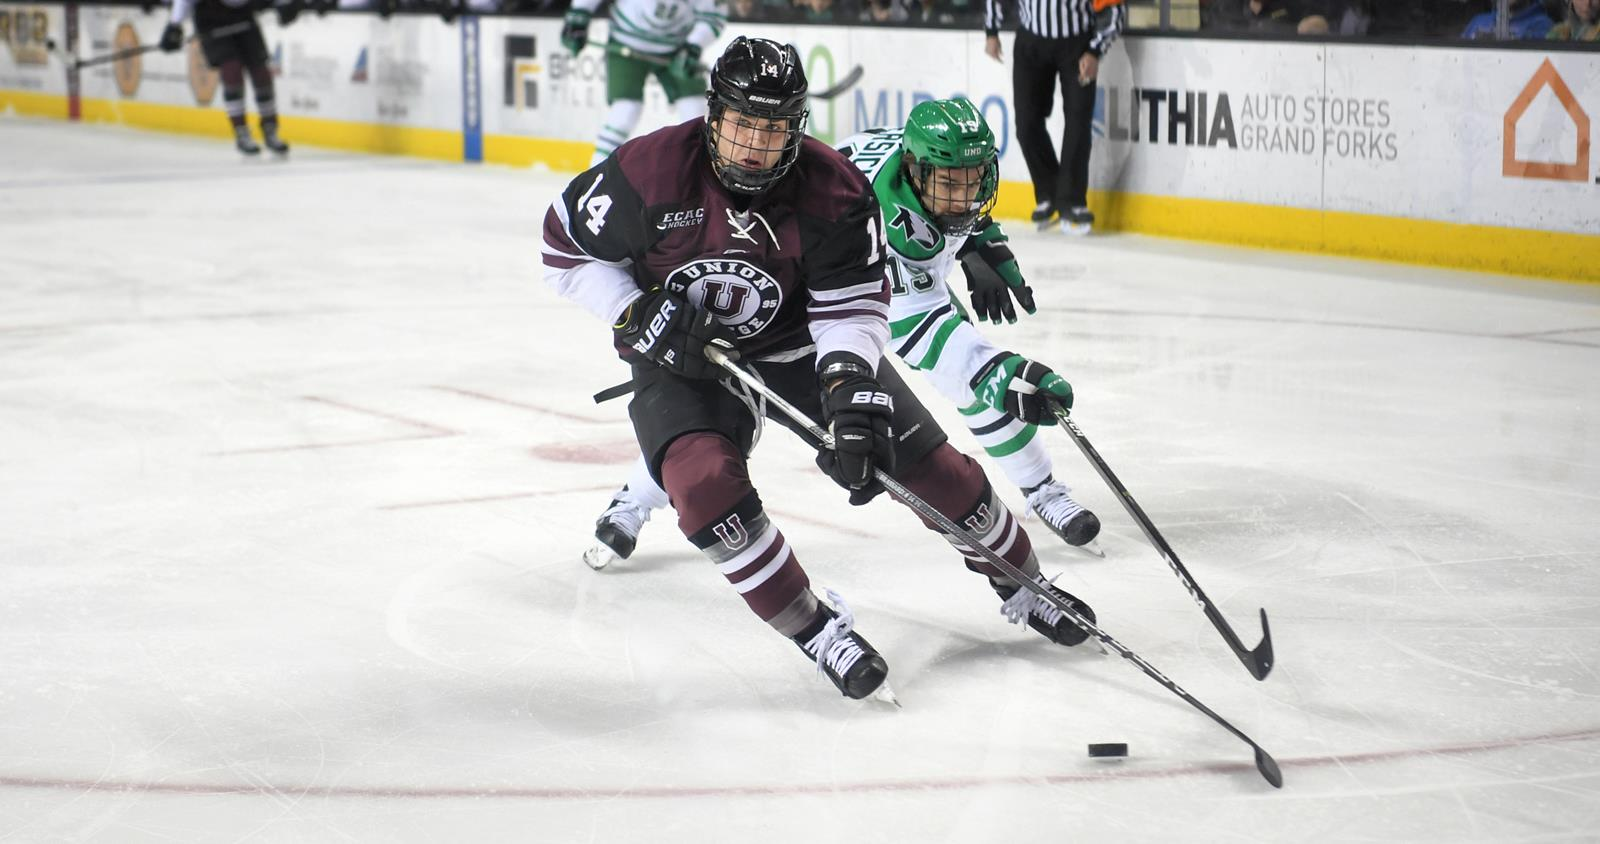 Union (NY) Union (NY) Mens College Ice Hockey - Union (NY ...